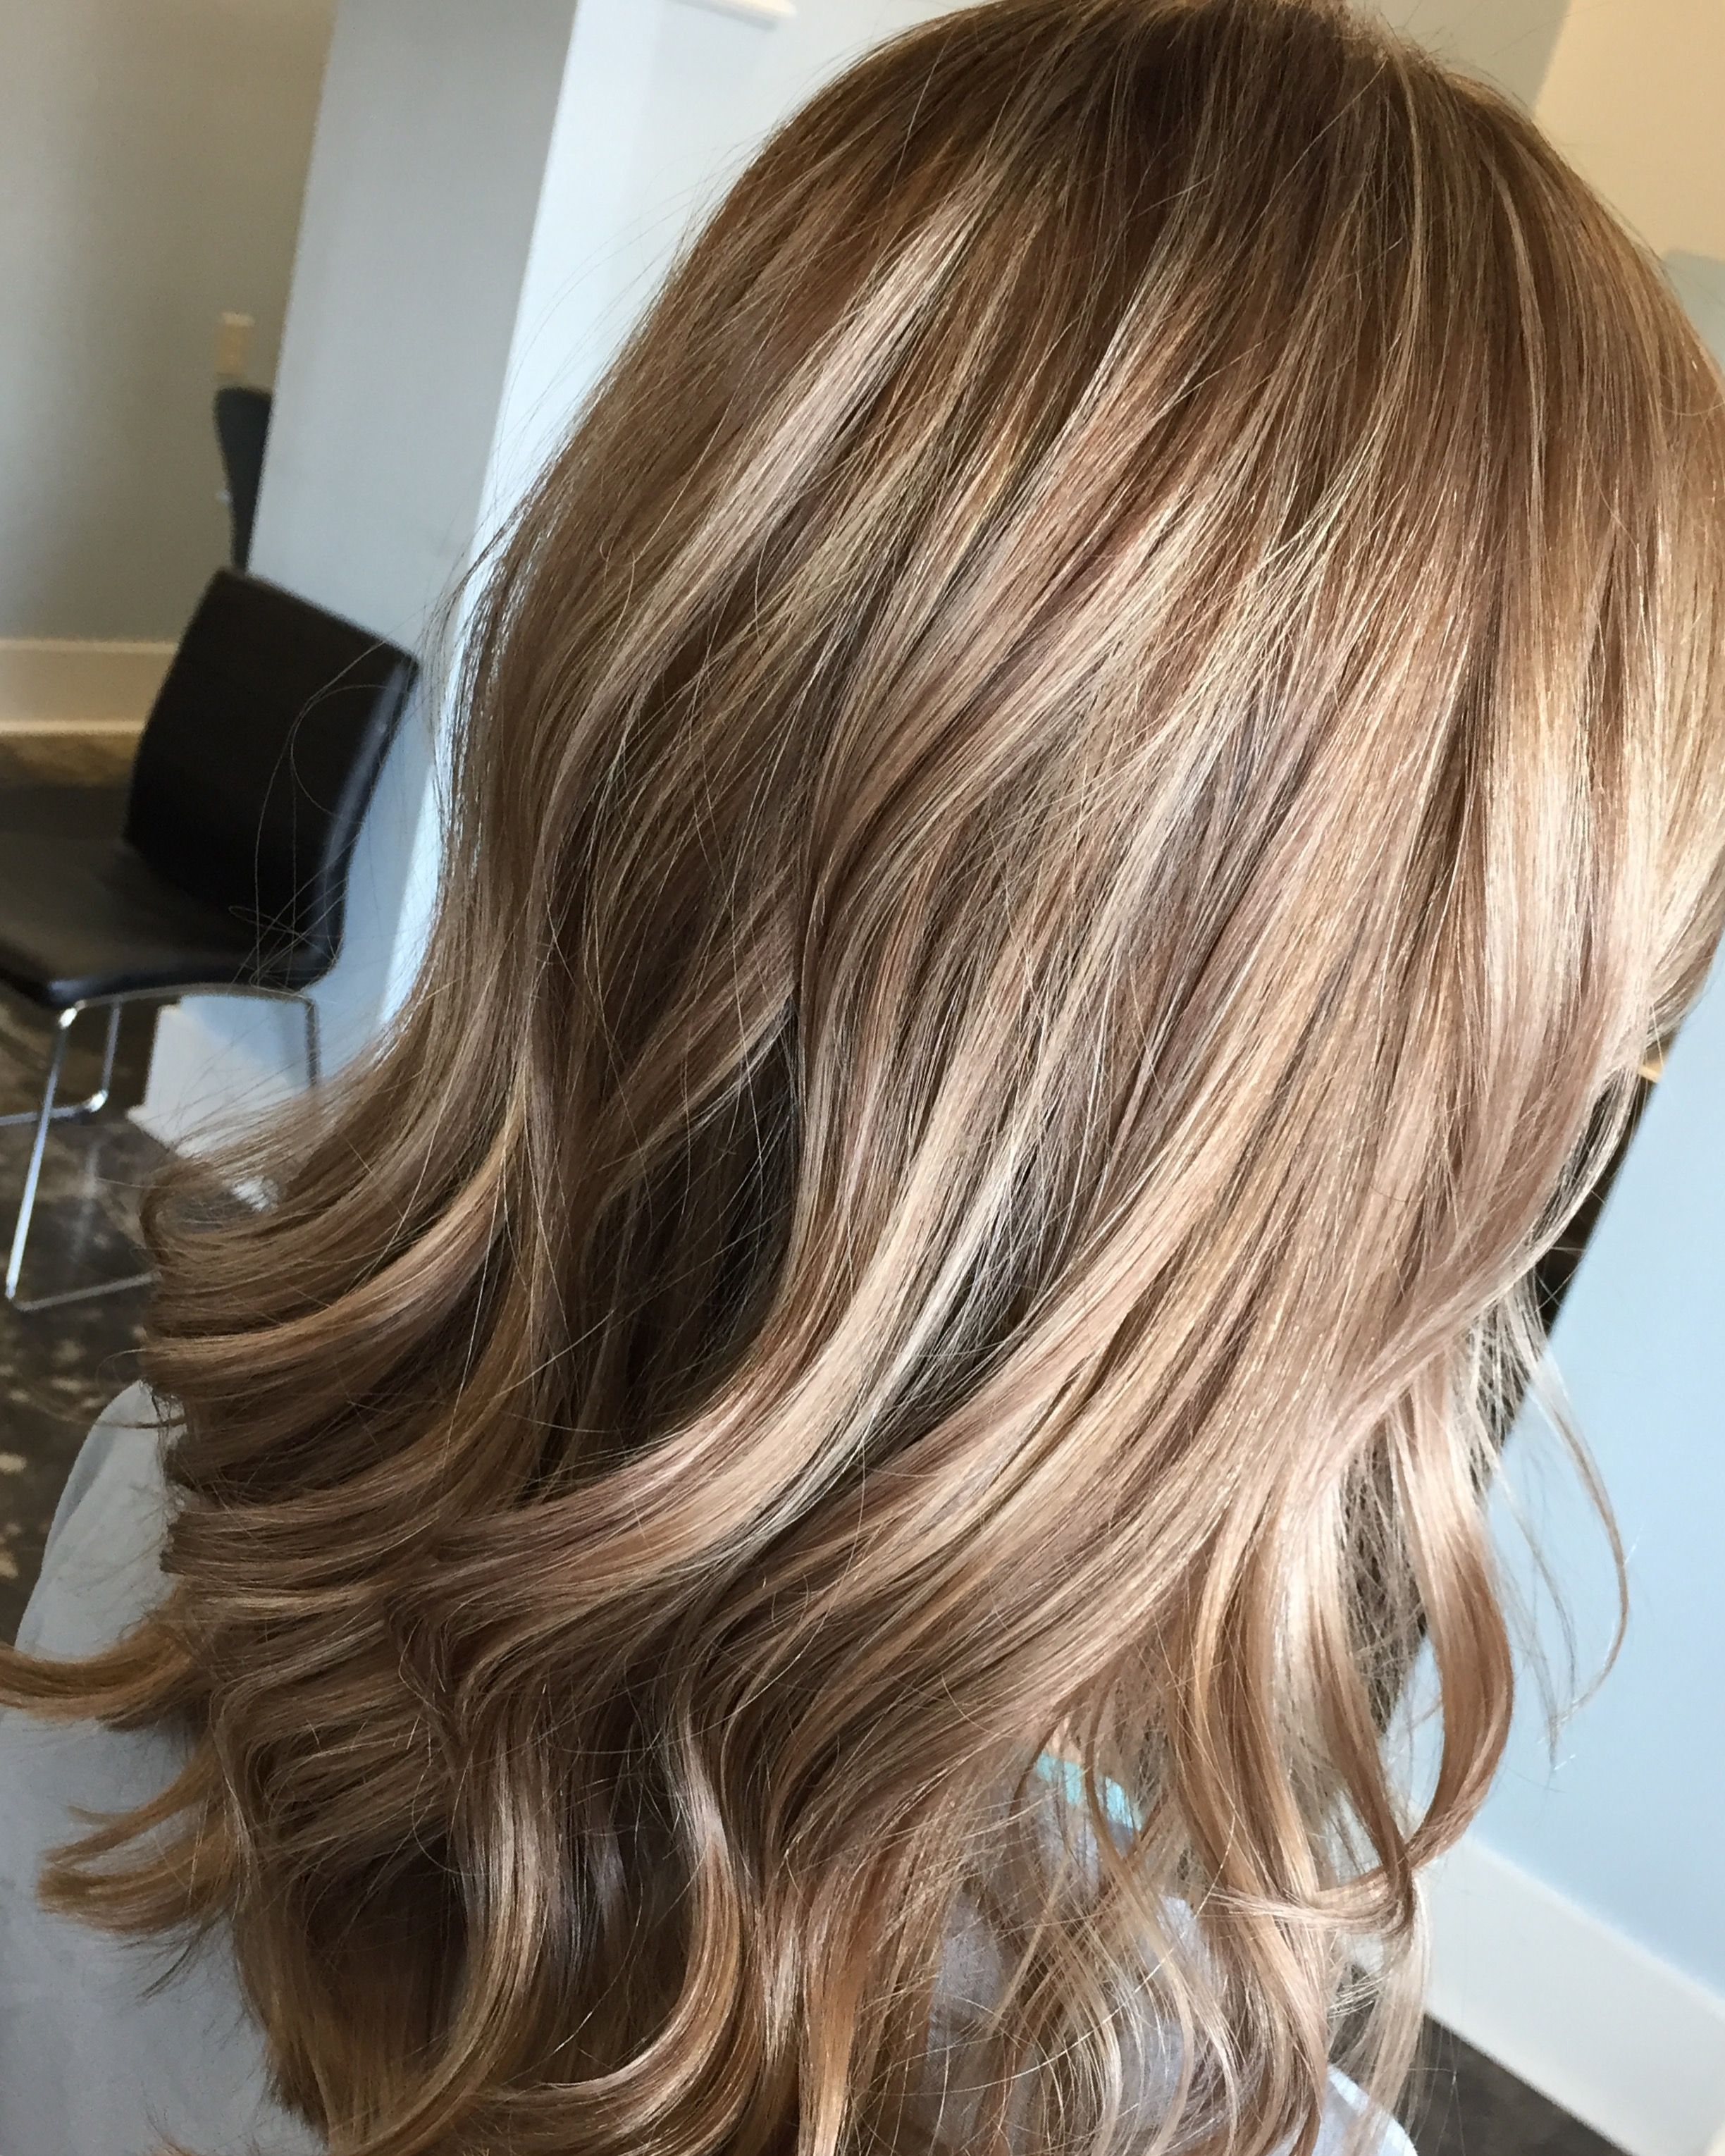 Blonde Foiled Highlights With Level 8 Base Highlights